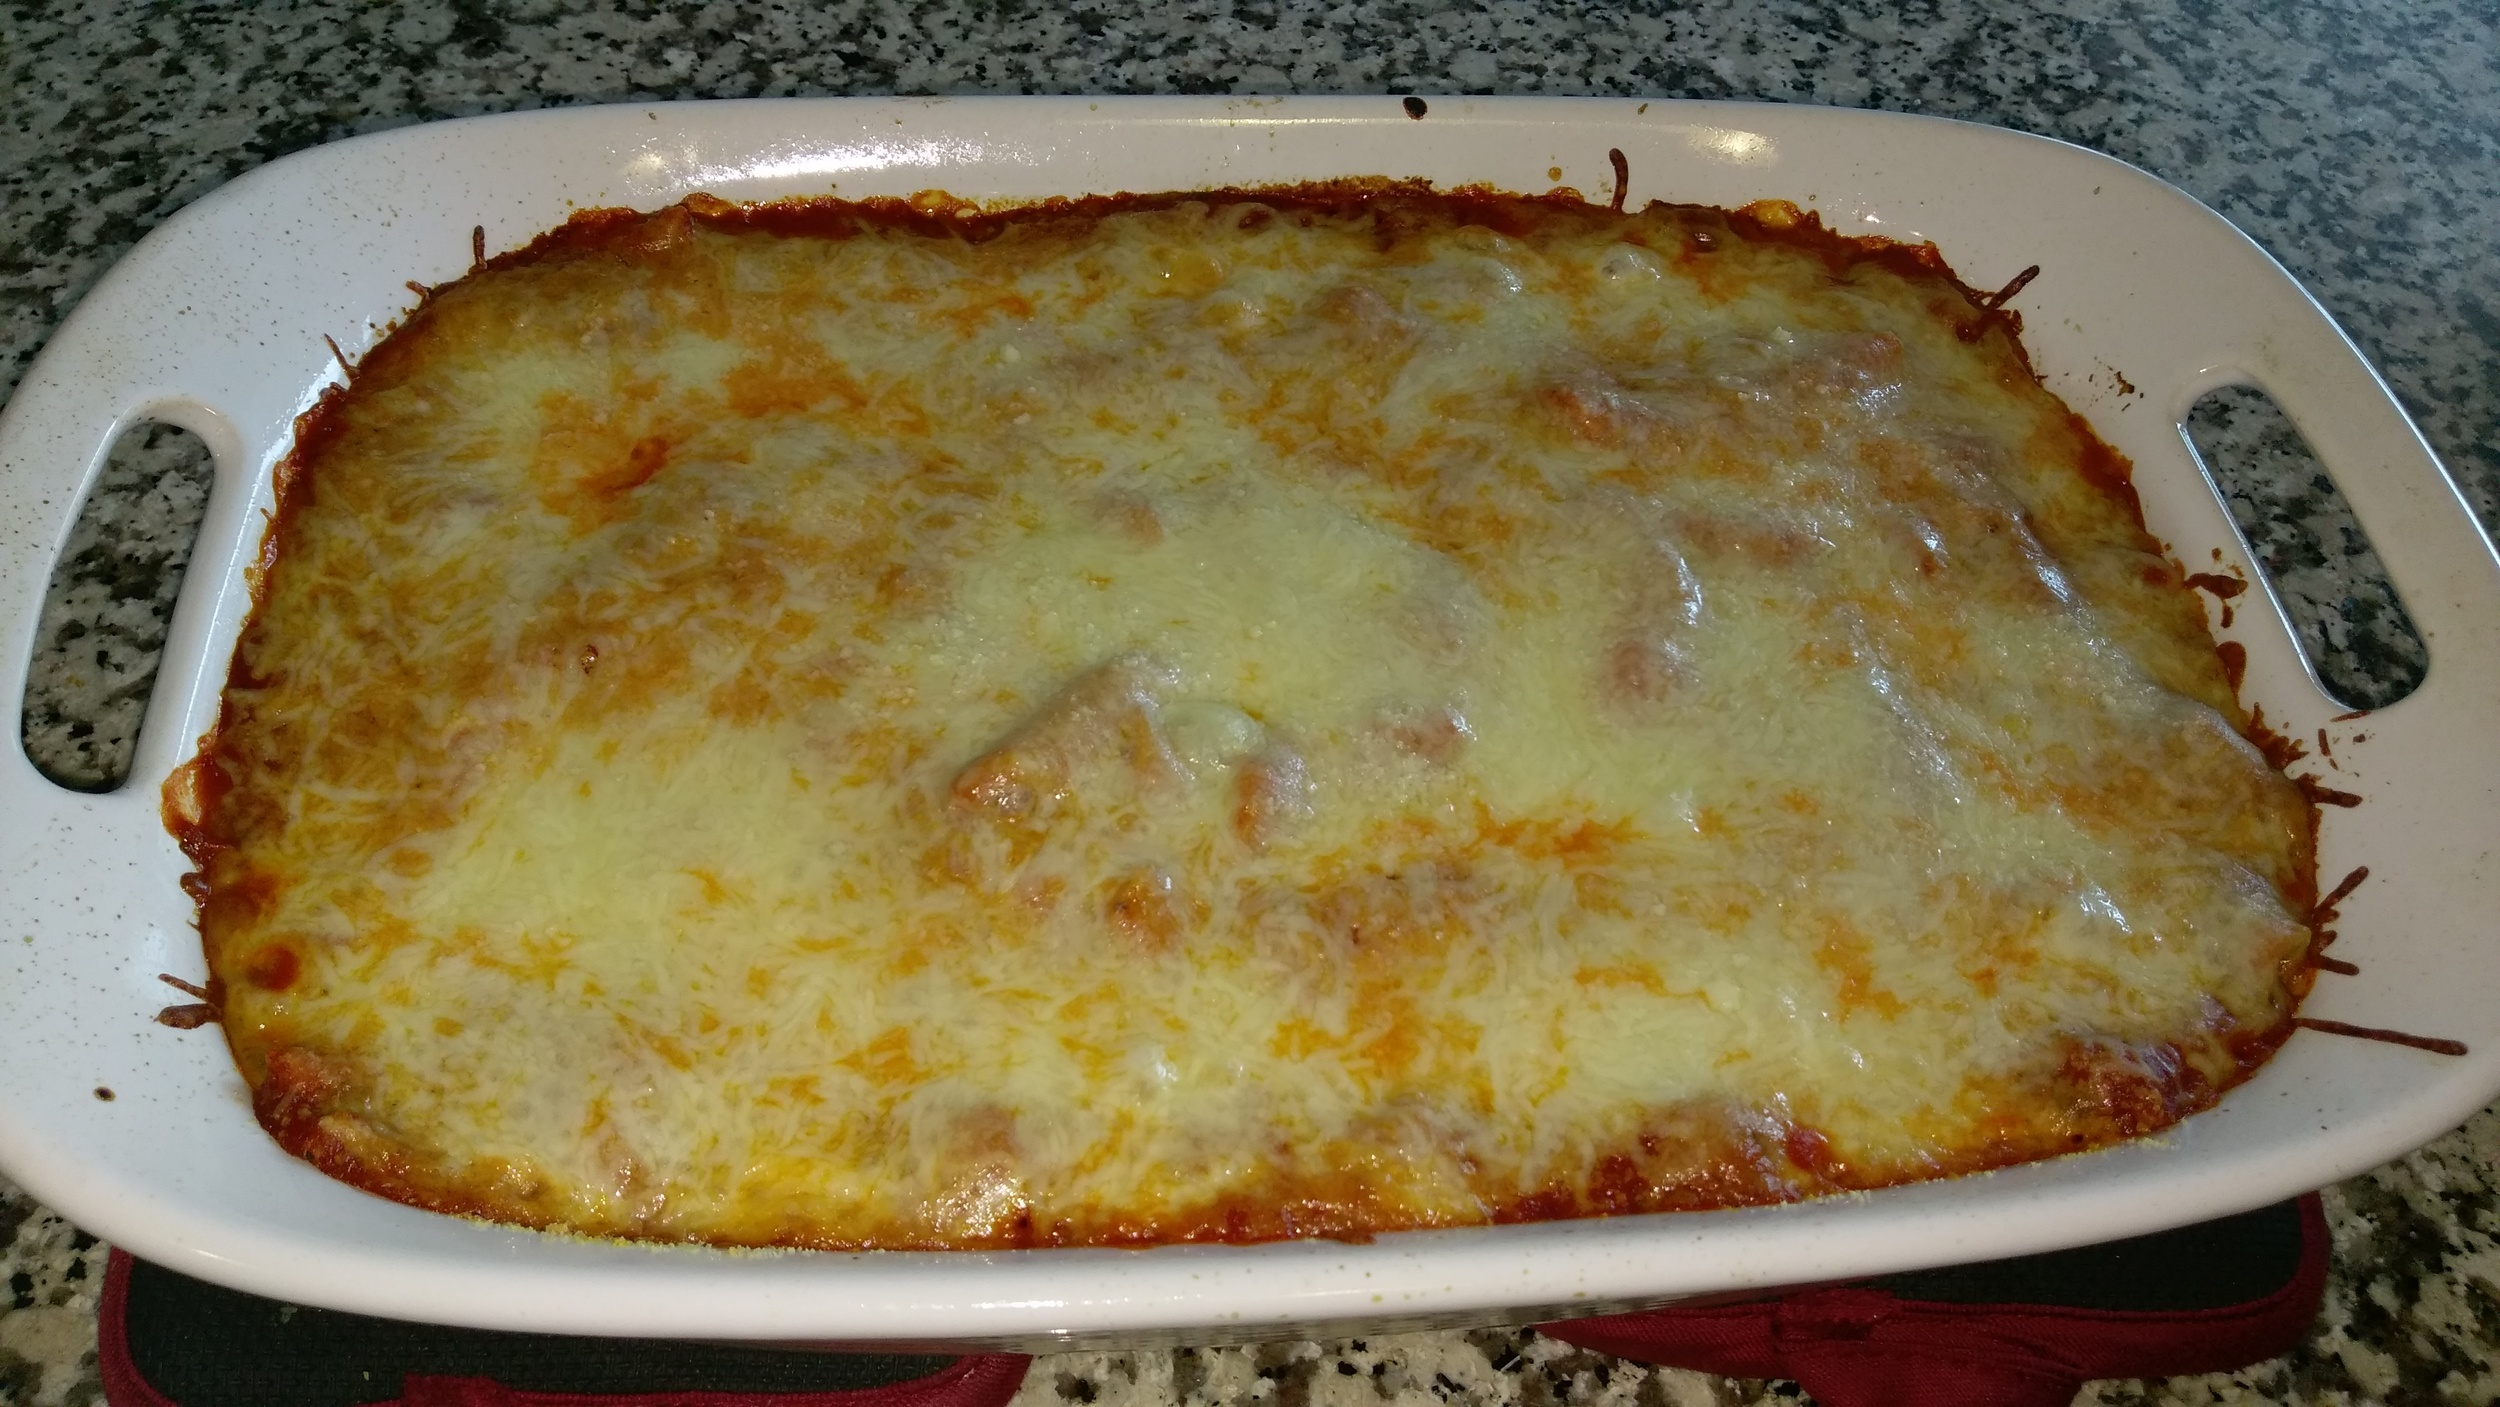 Delicious and nutritious baked rigatoni